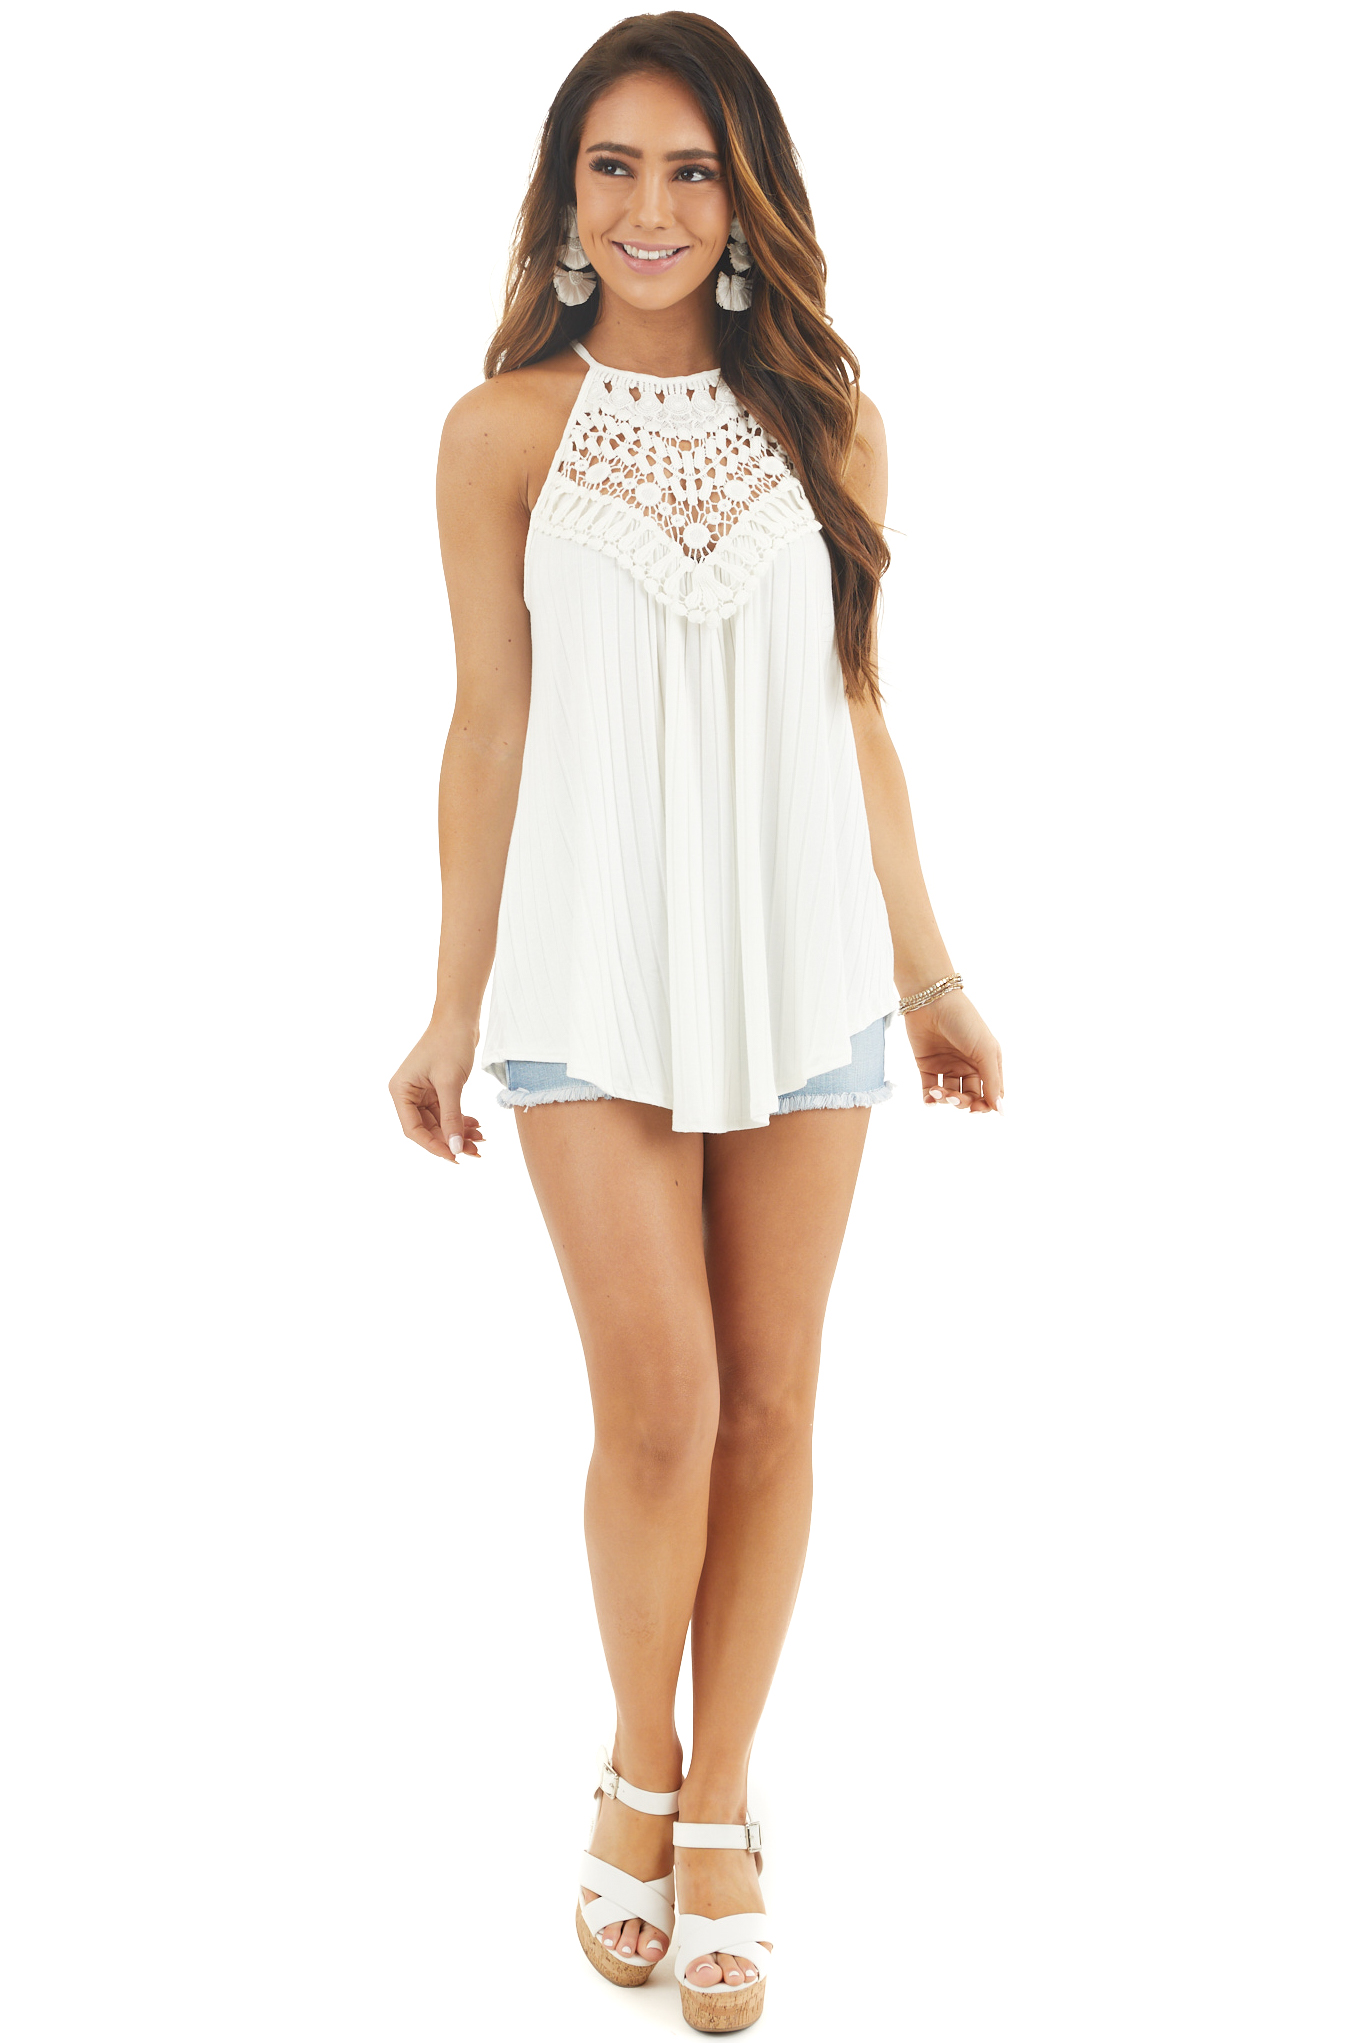 Pearl Sleeveless Halter Tank Top with Crochet Details